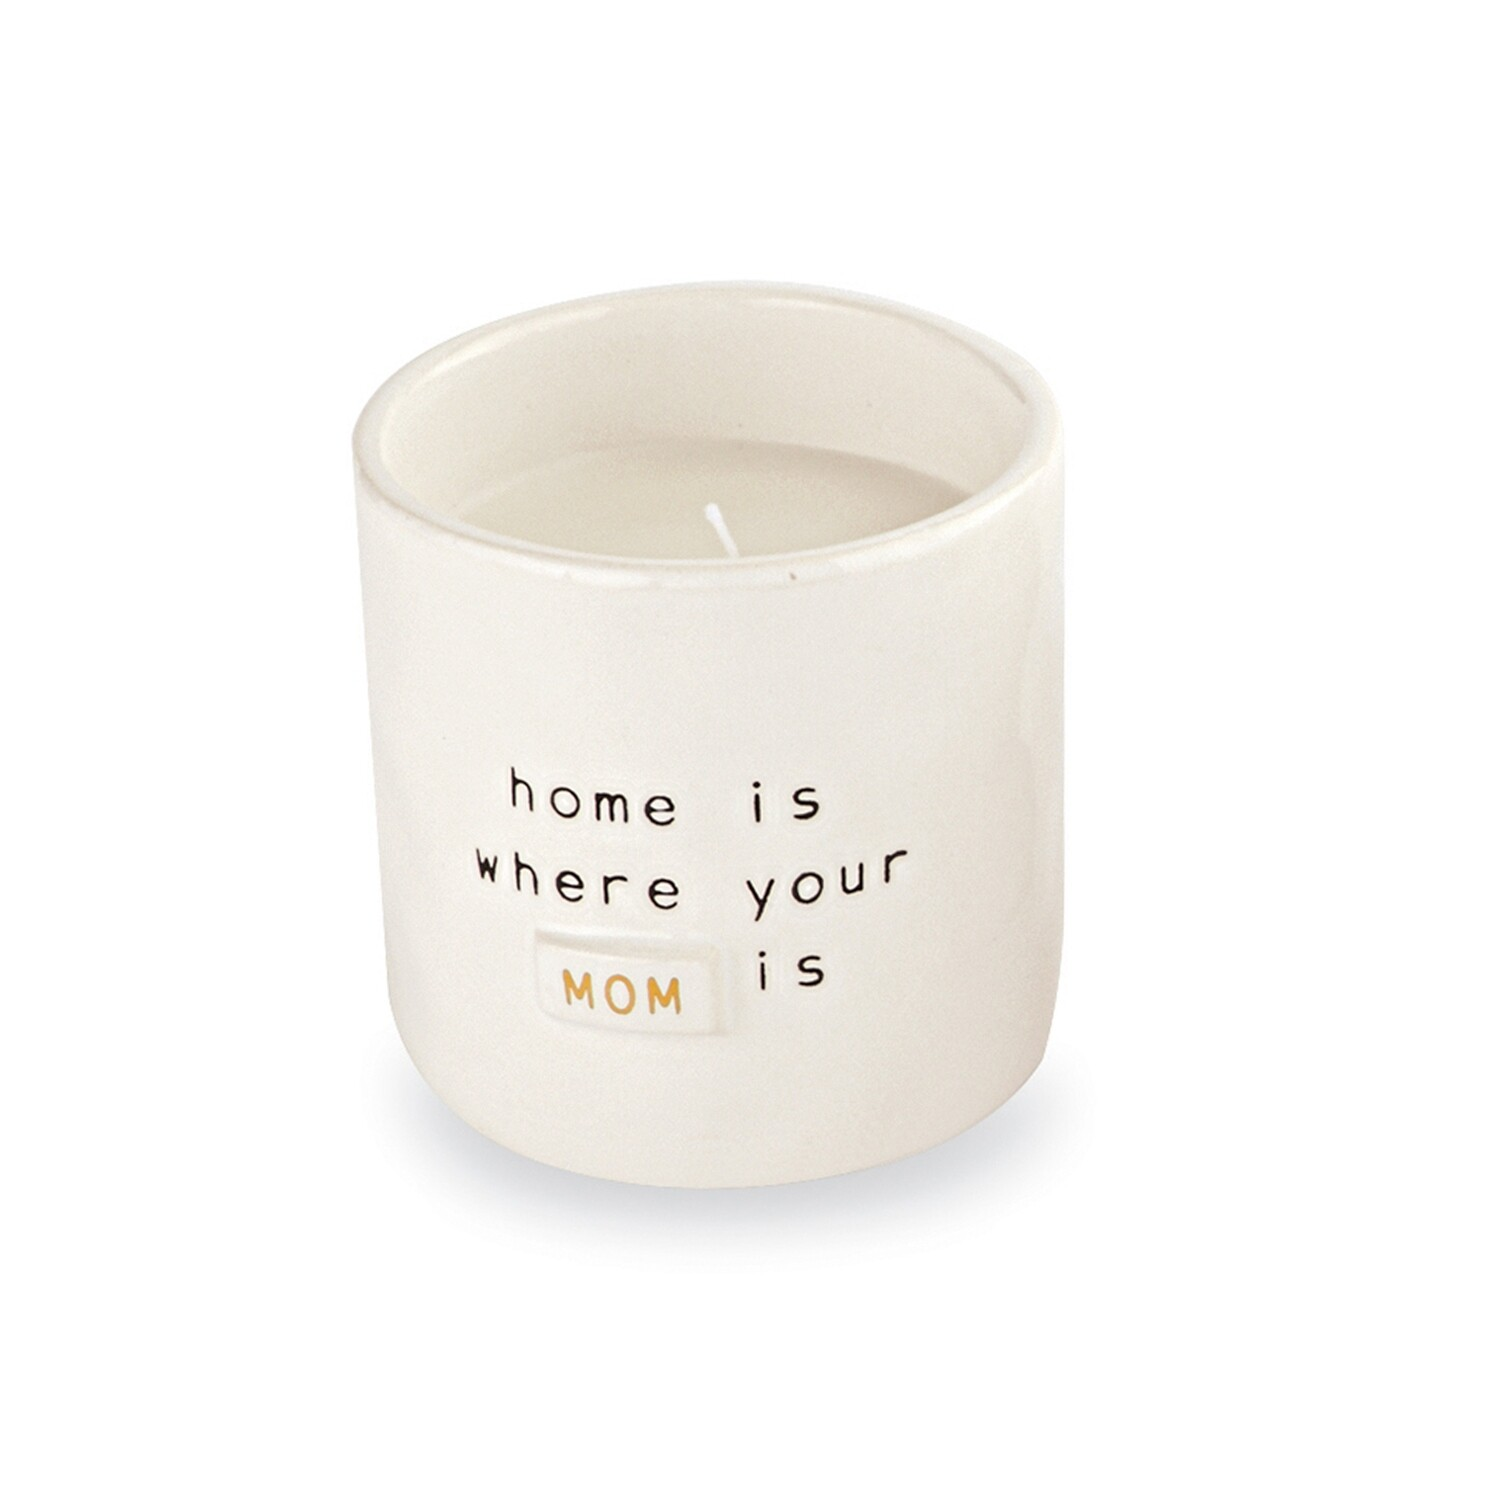 Mom boxed Candle - home